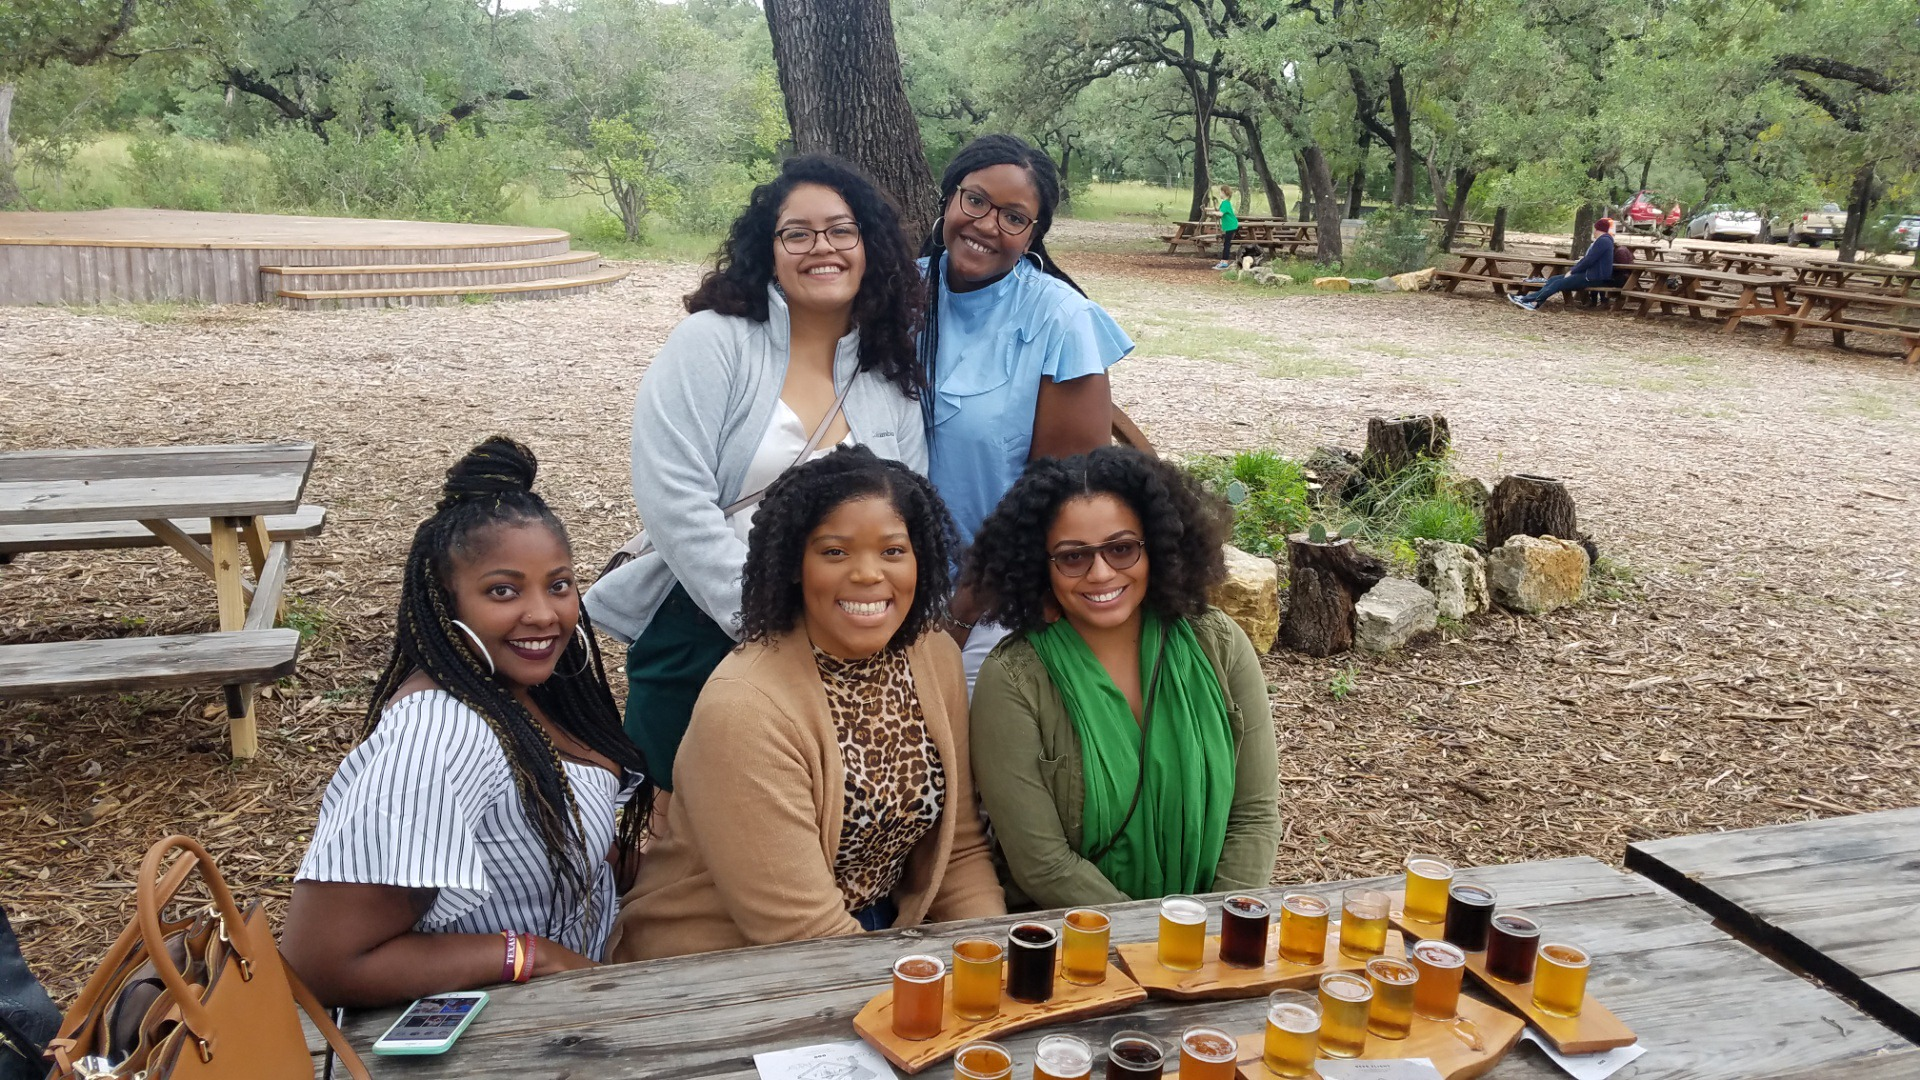 Dripping Springs Beer Tour - Jester King Brewery Vista Brewing (beer & fantastic food, meal not included)Family Business Brewery$100/person15% gratuity not included.